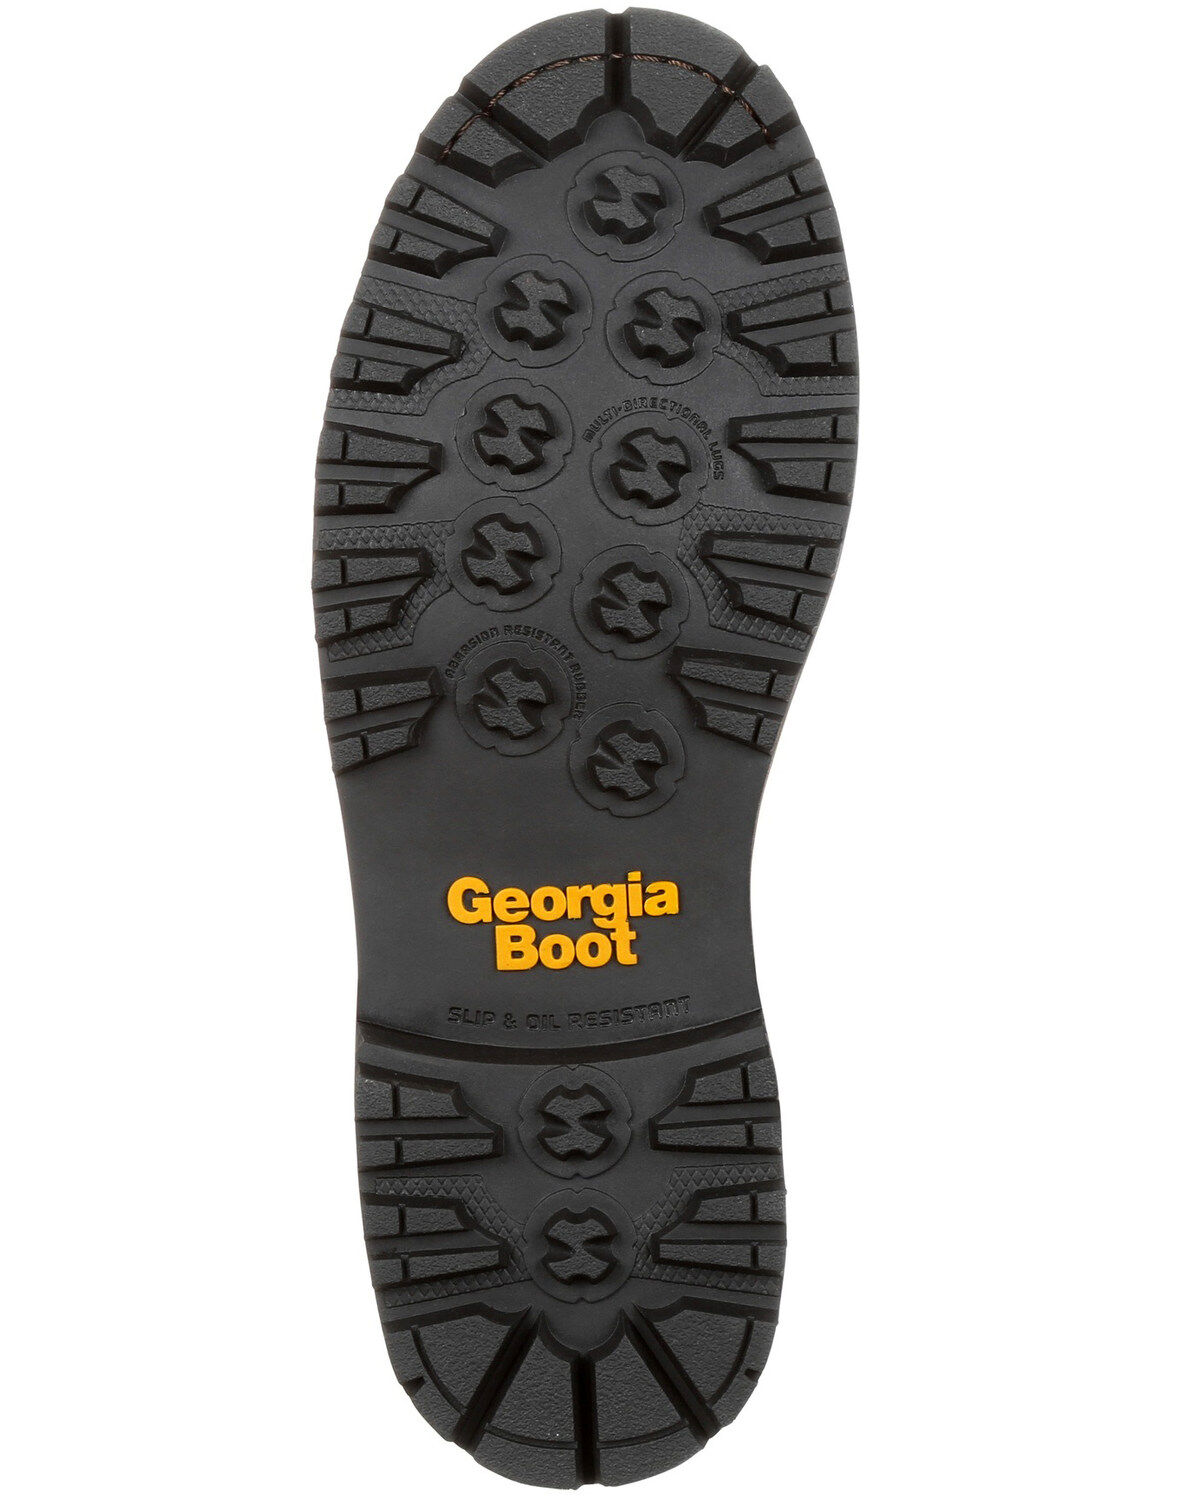 Georgia Boot Mens Low Heel Logger 9 Comp Toe Waterproof